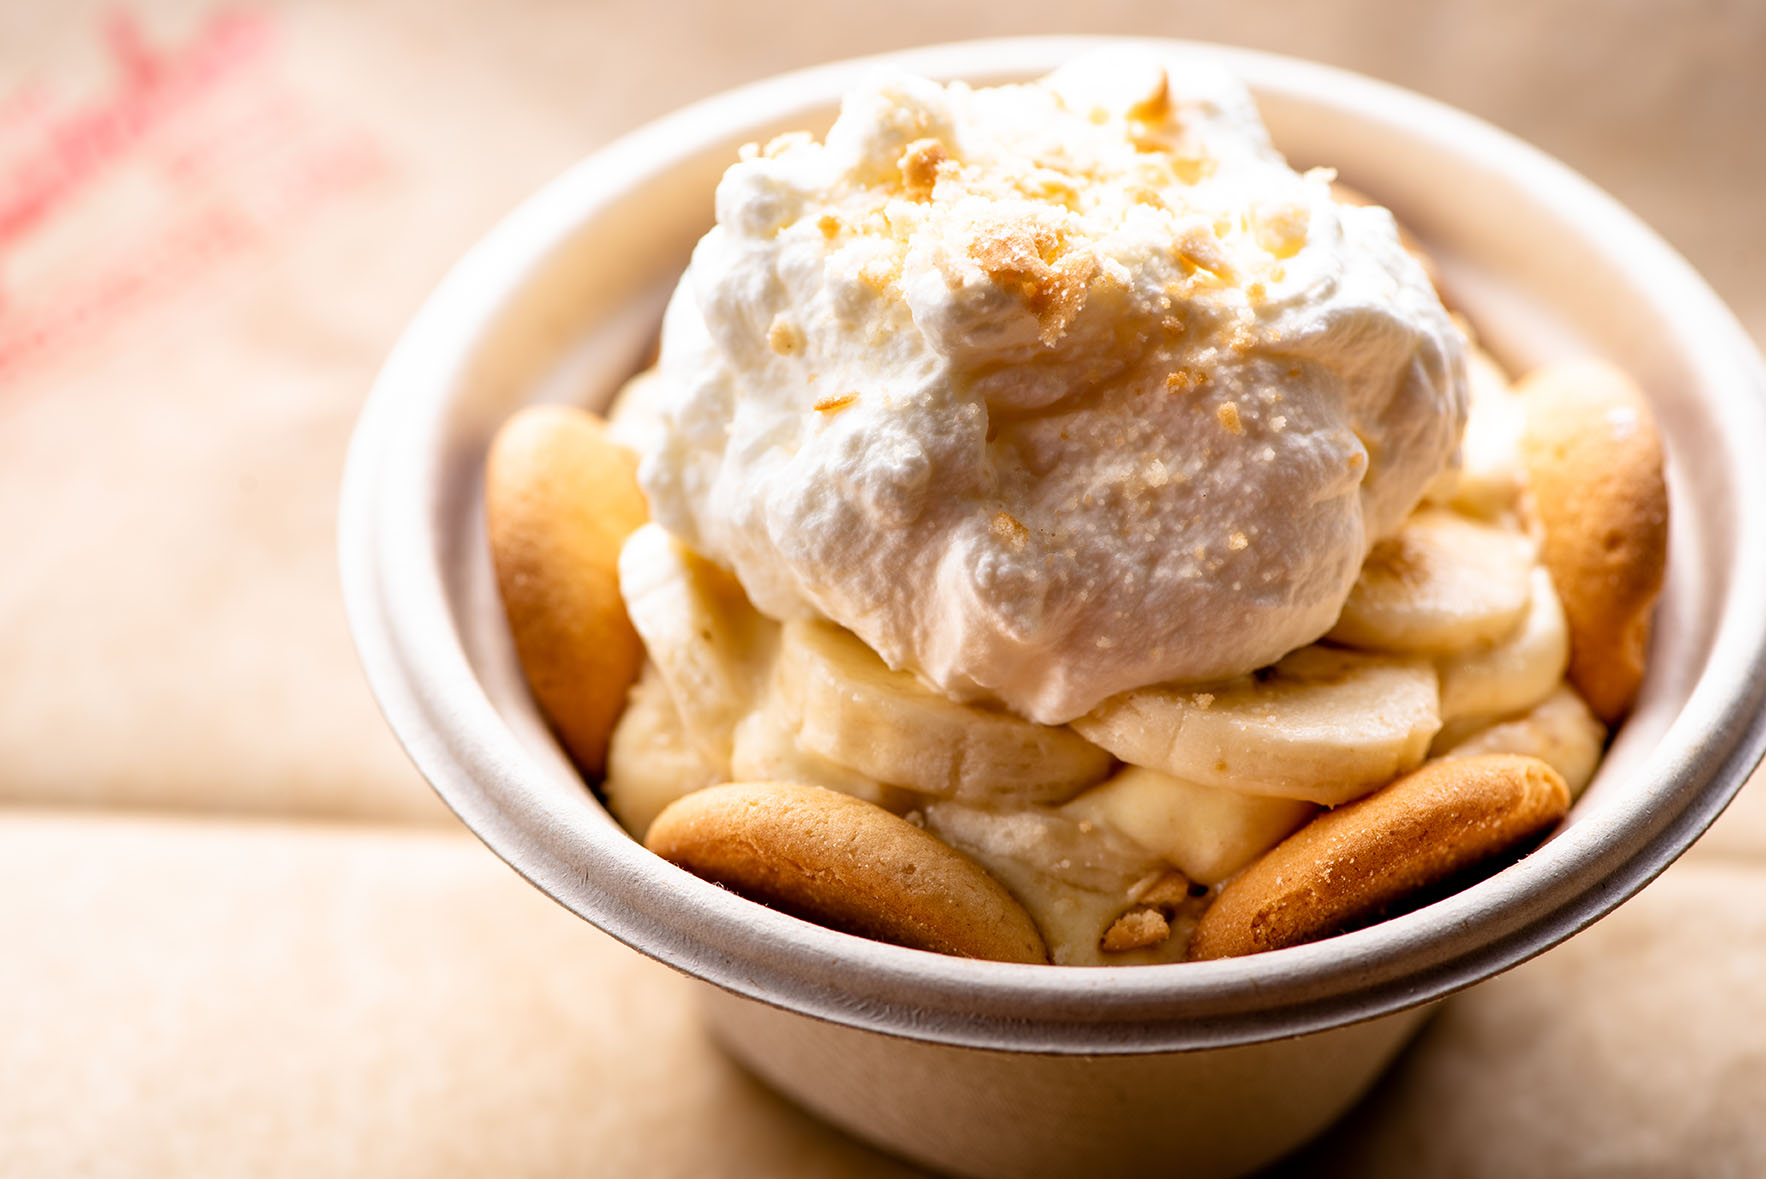 Louisiana Style Homemade Banana Pudding